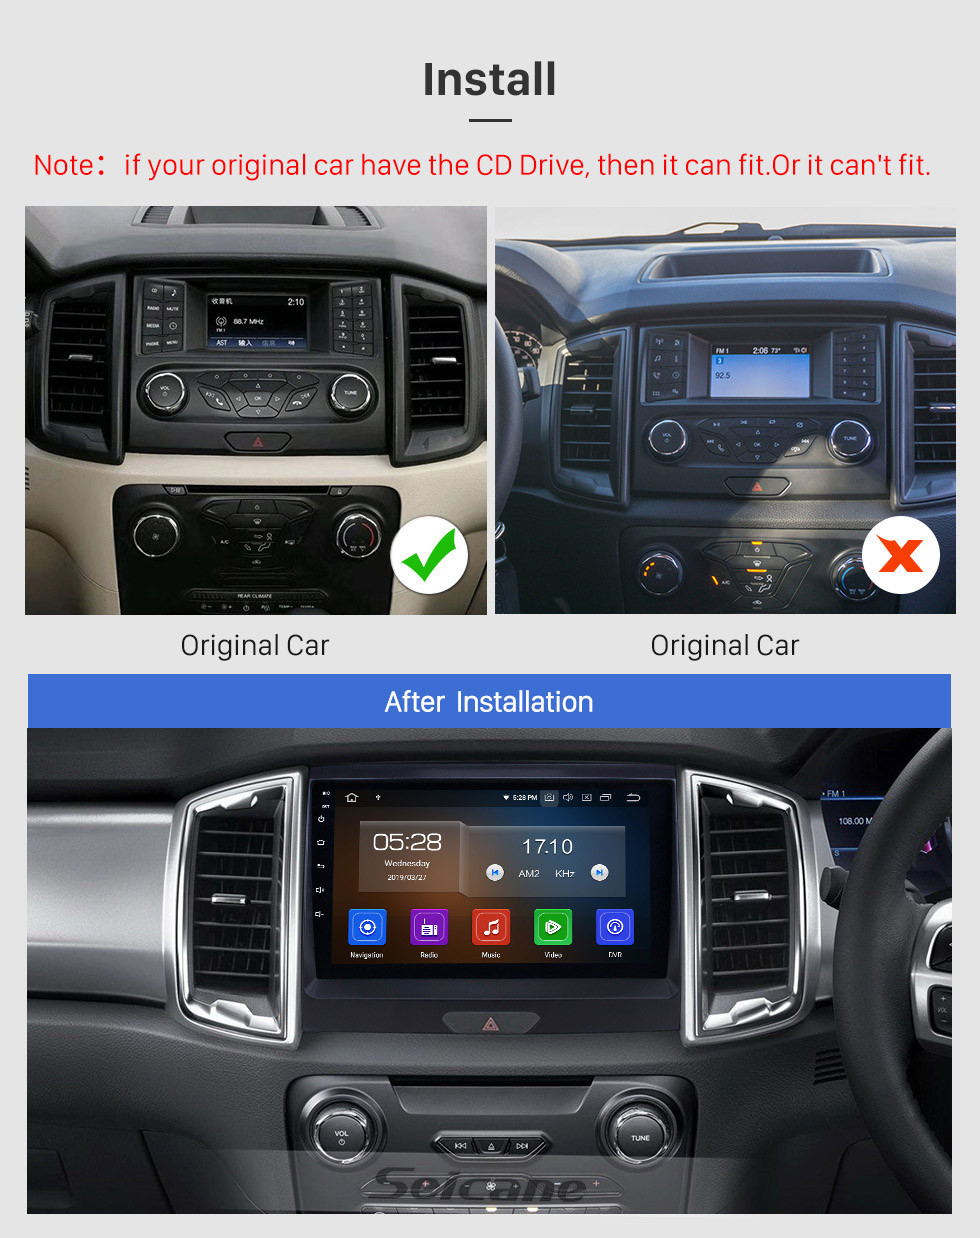 Seicane 2015 Ford Ranger Touchscreen Android 10.0 9 inch GPS Navigation Radio Bluetooth Multimedia Player Carplay Music AUX support Digital TV 1080P